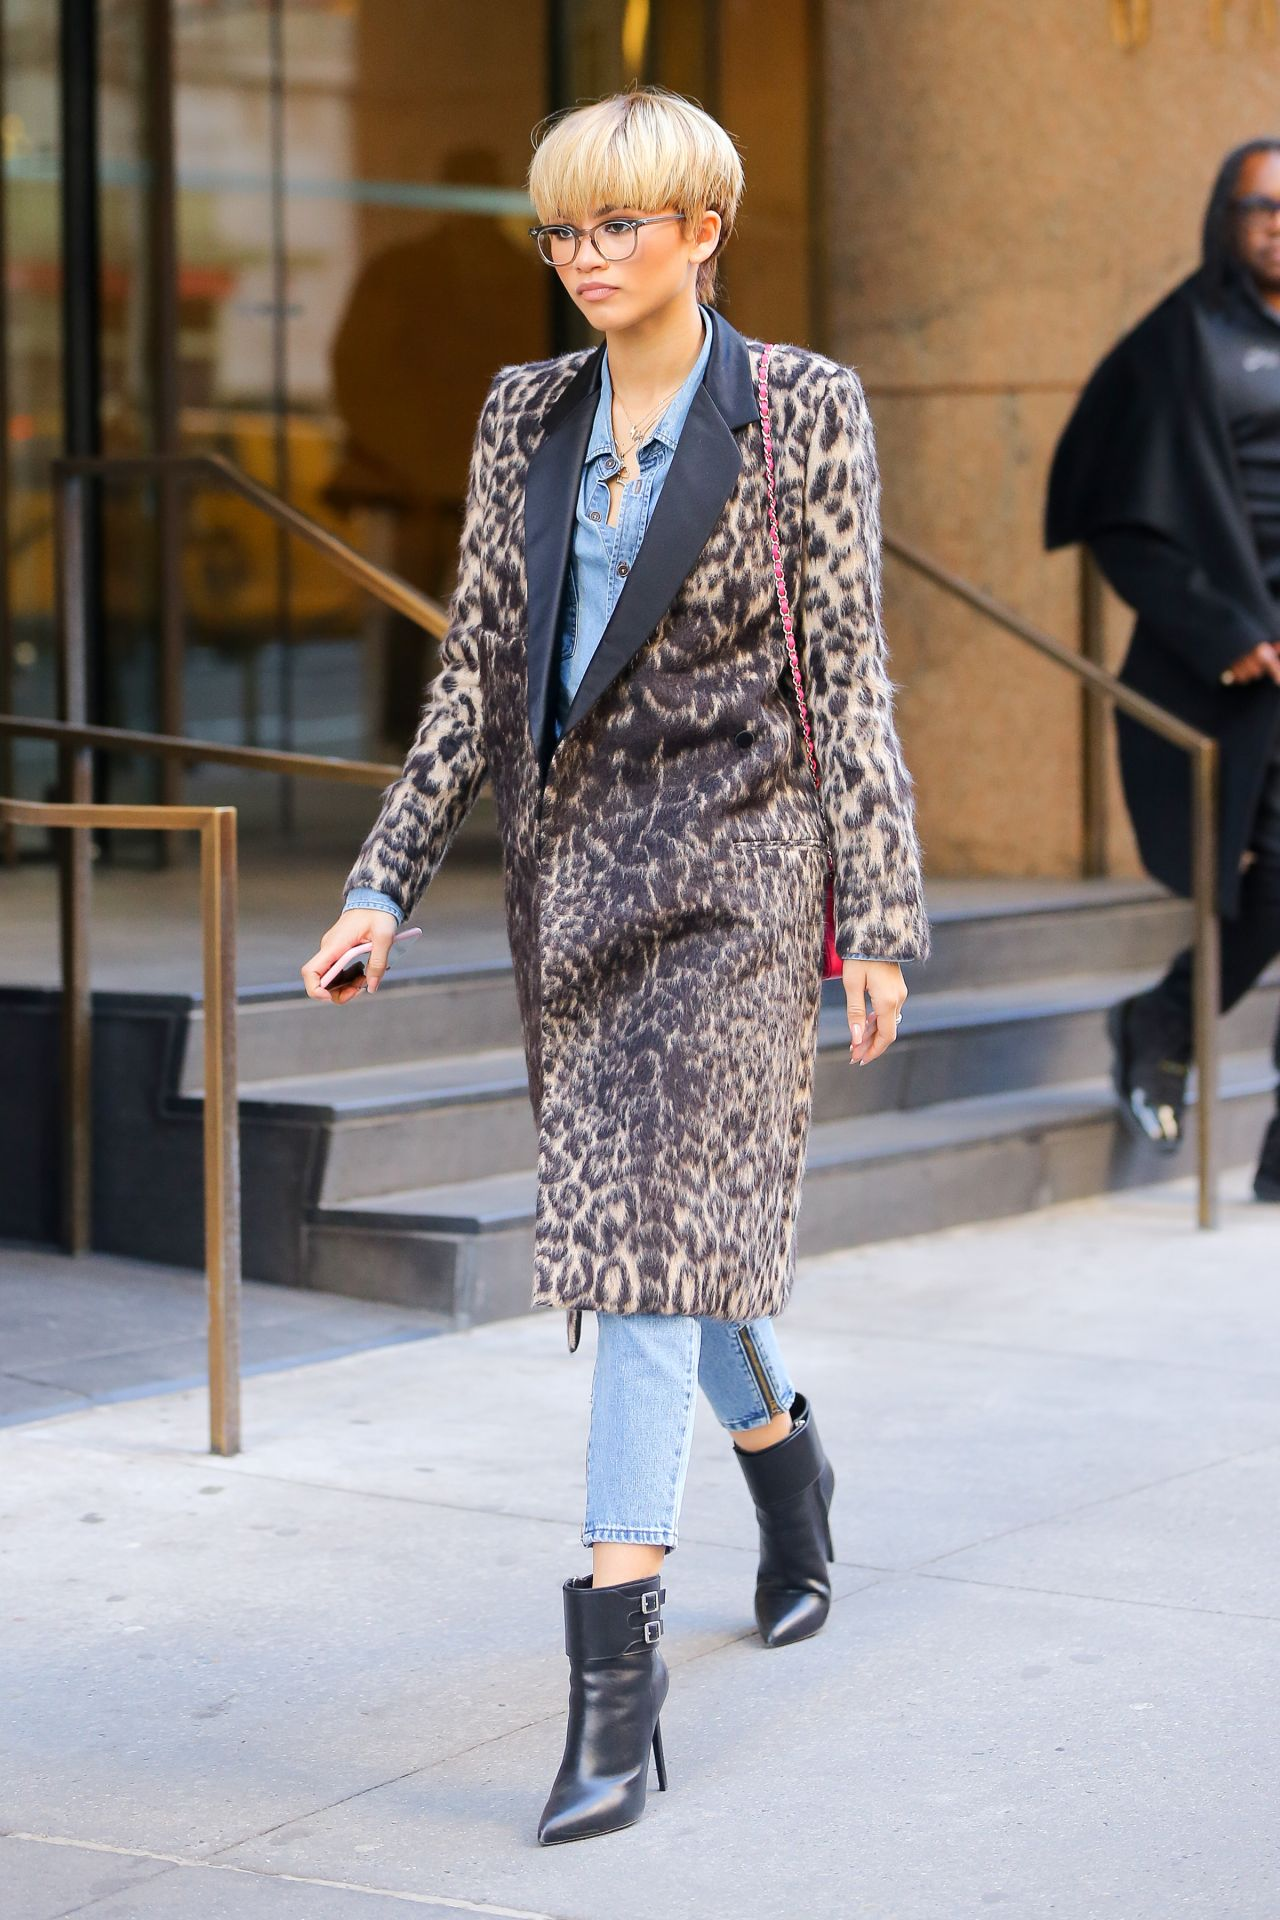 Zendaya coleman street style out in nyc nude (35 photos), Fappening Celebrity pics